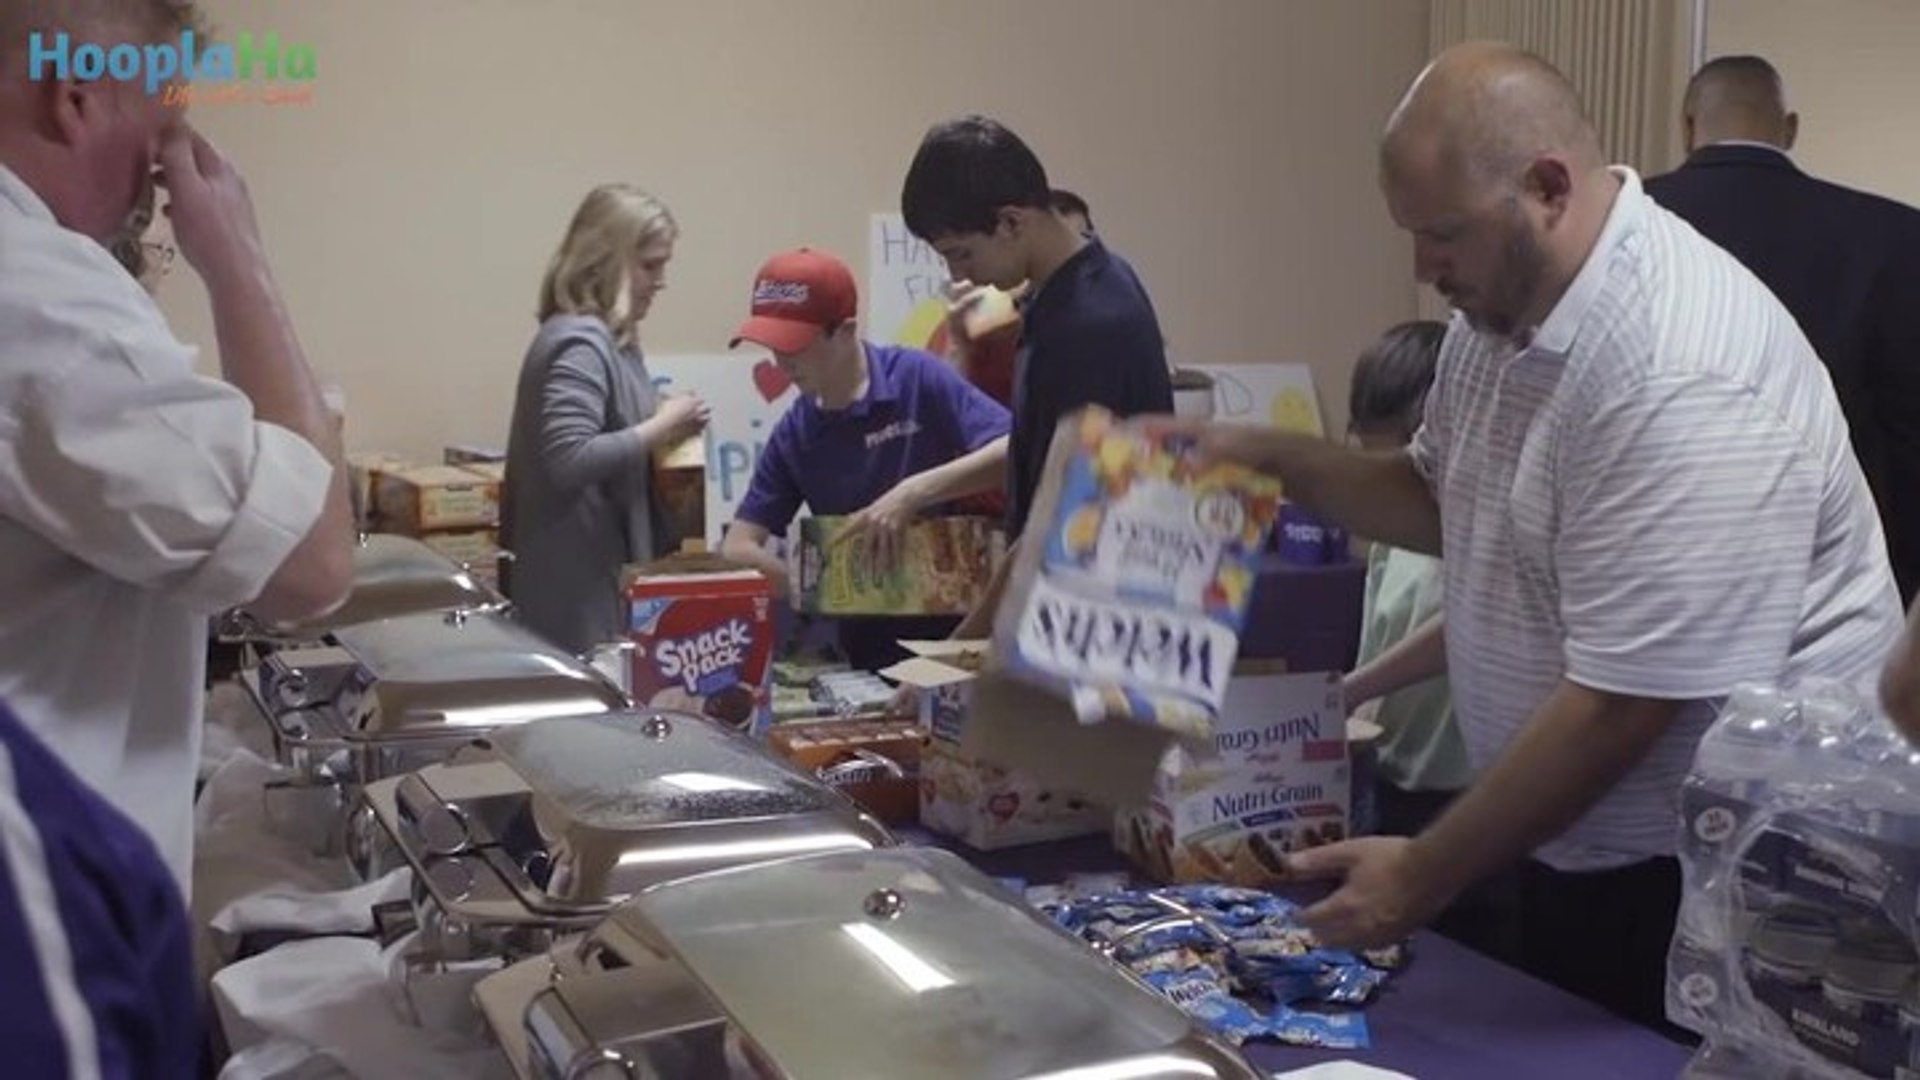 Determined 12 Year Old Runs Non-Profit To Feed Hungry Children